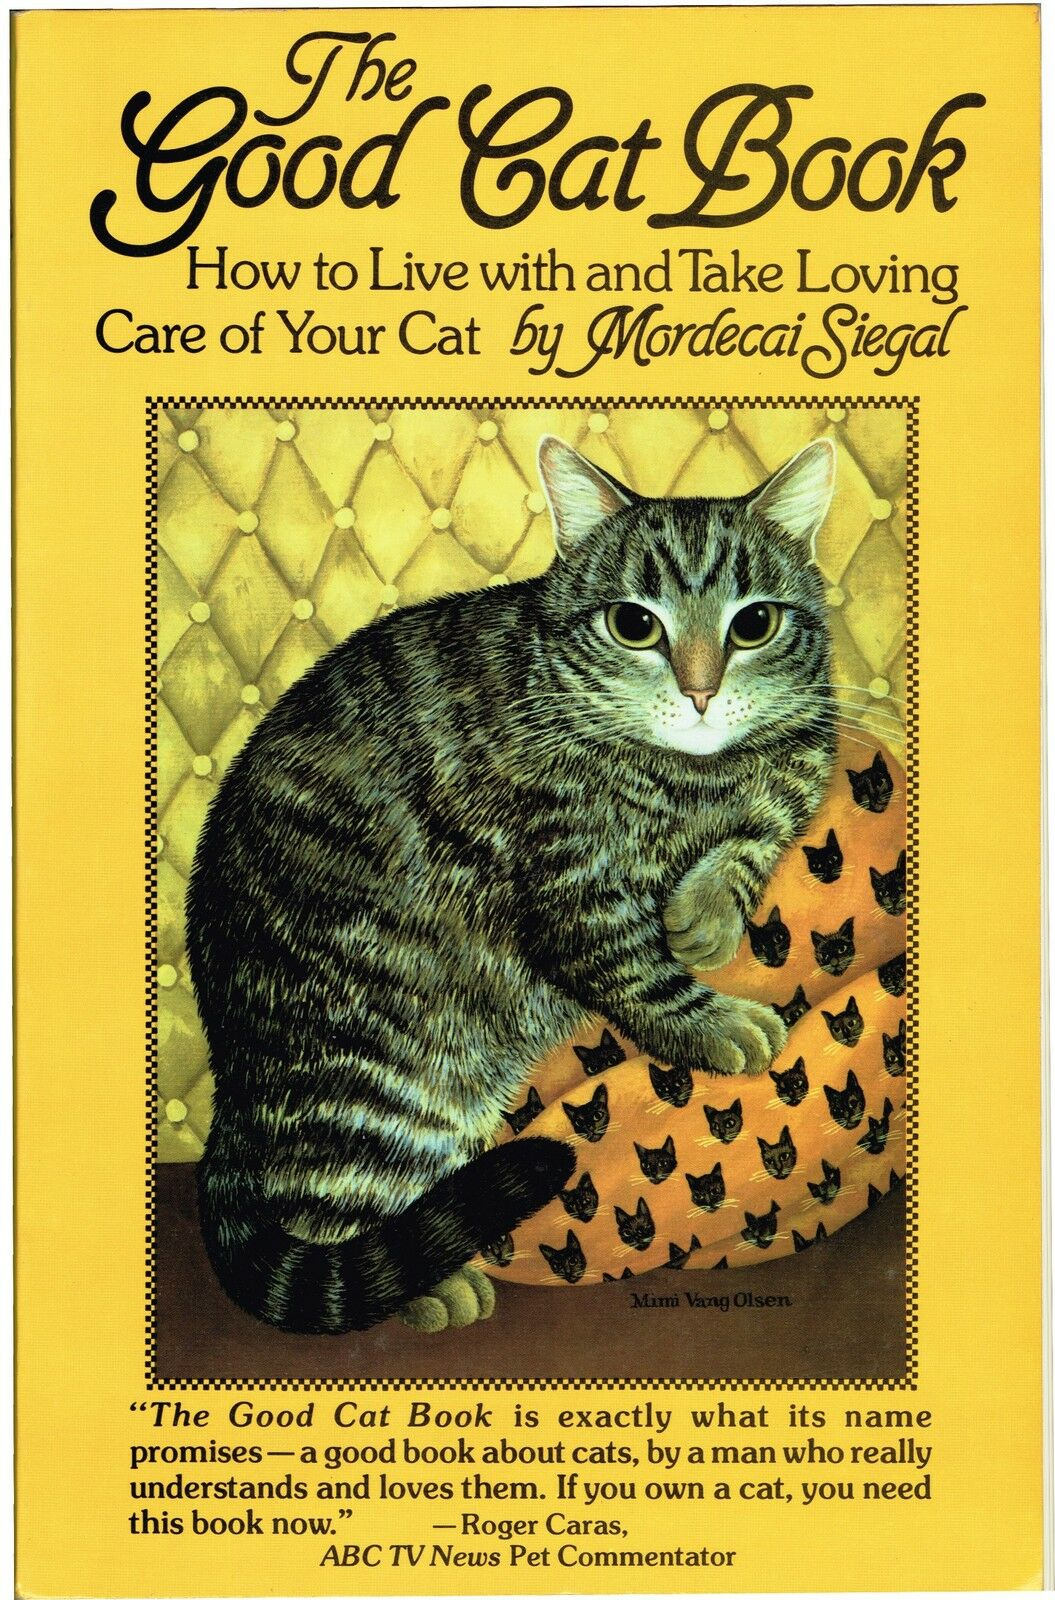 THE GOOD CAT BOOK by MORDECAI SIEGAL 1982( PAPERBACK,BRAND NEW FACTORY SEALED) |